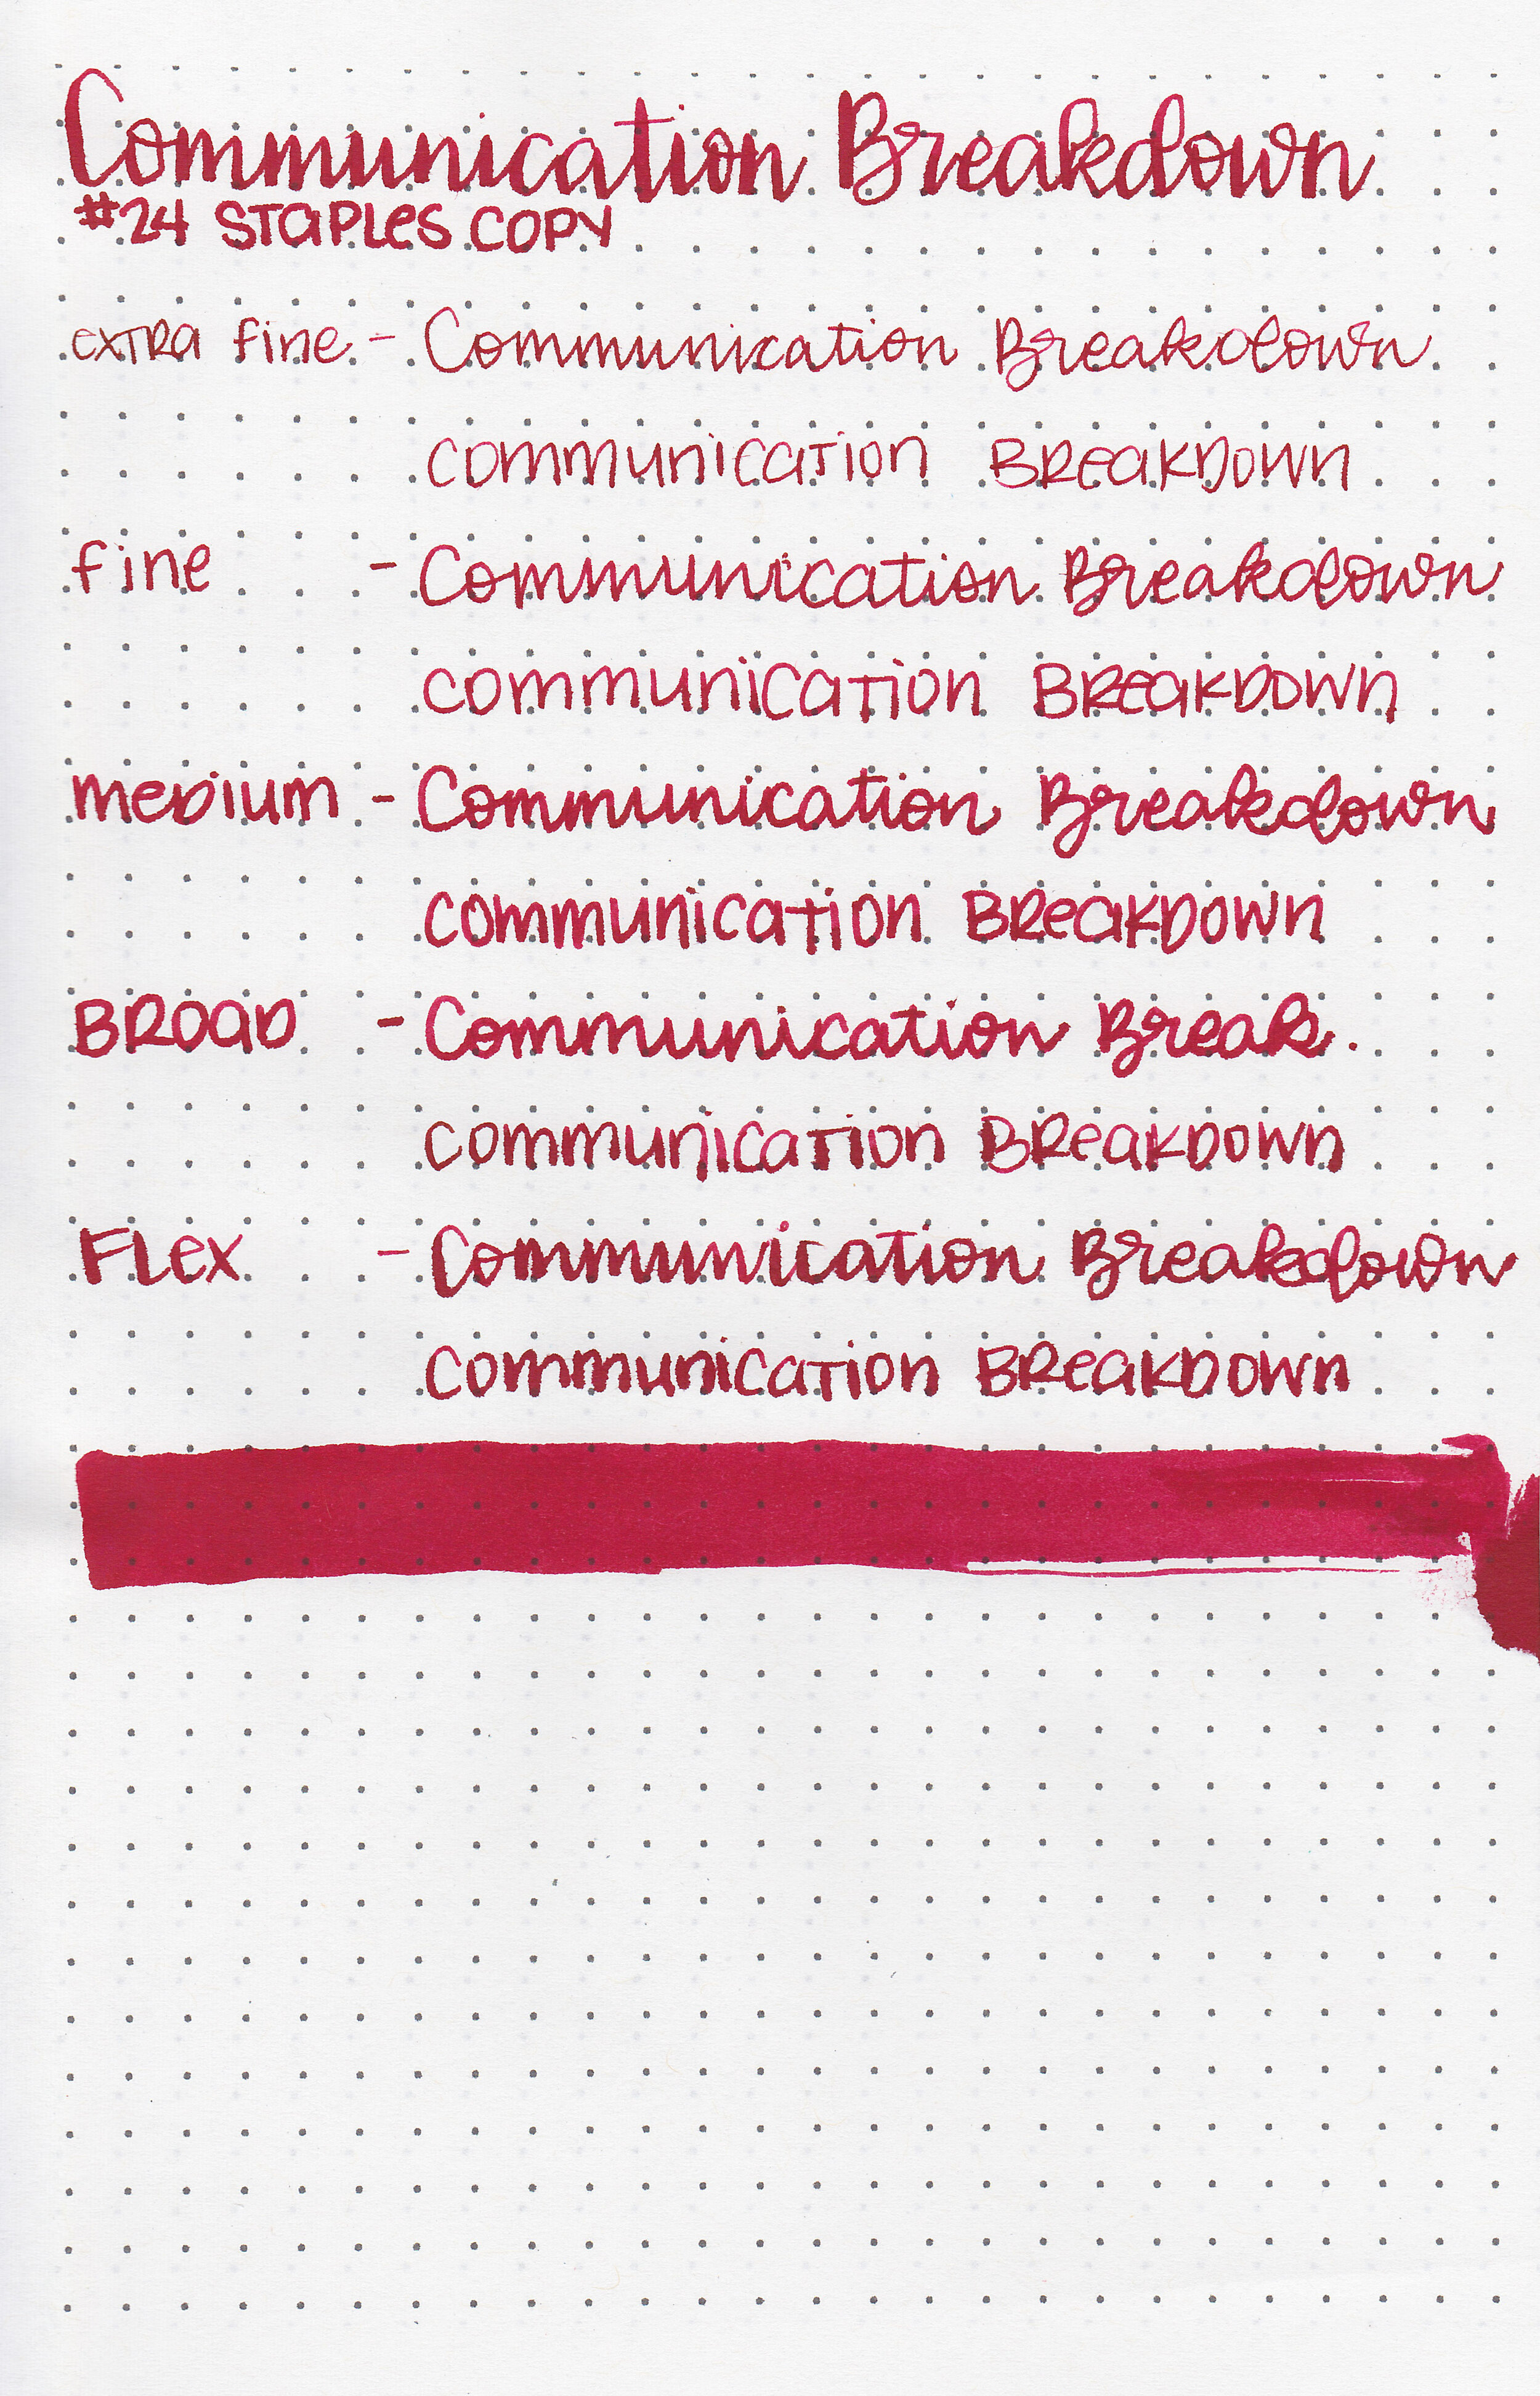 d-communication-breakdown-9.jpg